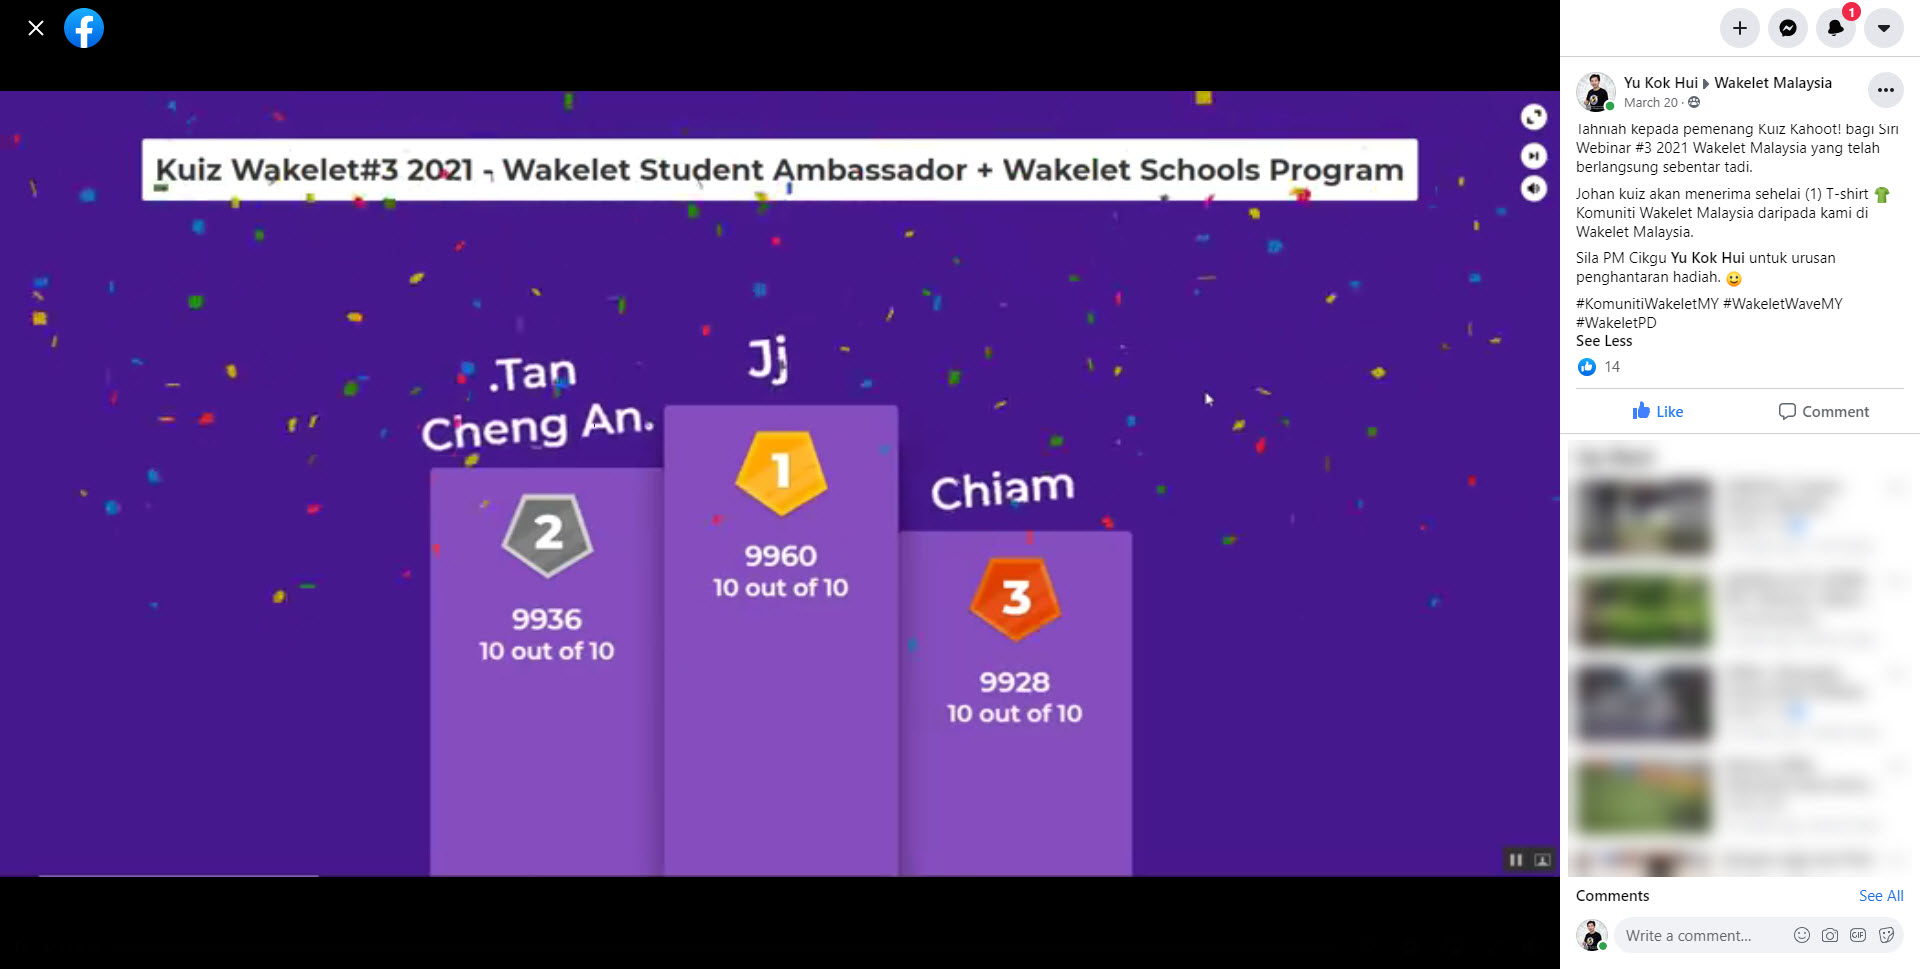 Spice Up Wakelet Training Sessions with Kahoot! - Wakelet Malaysia's First Webinar - Kahoot Challenge Winner Announced